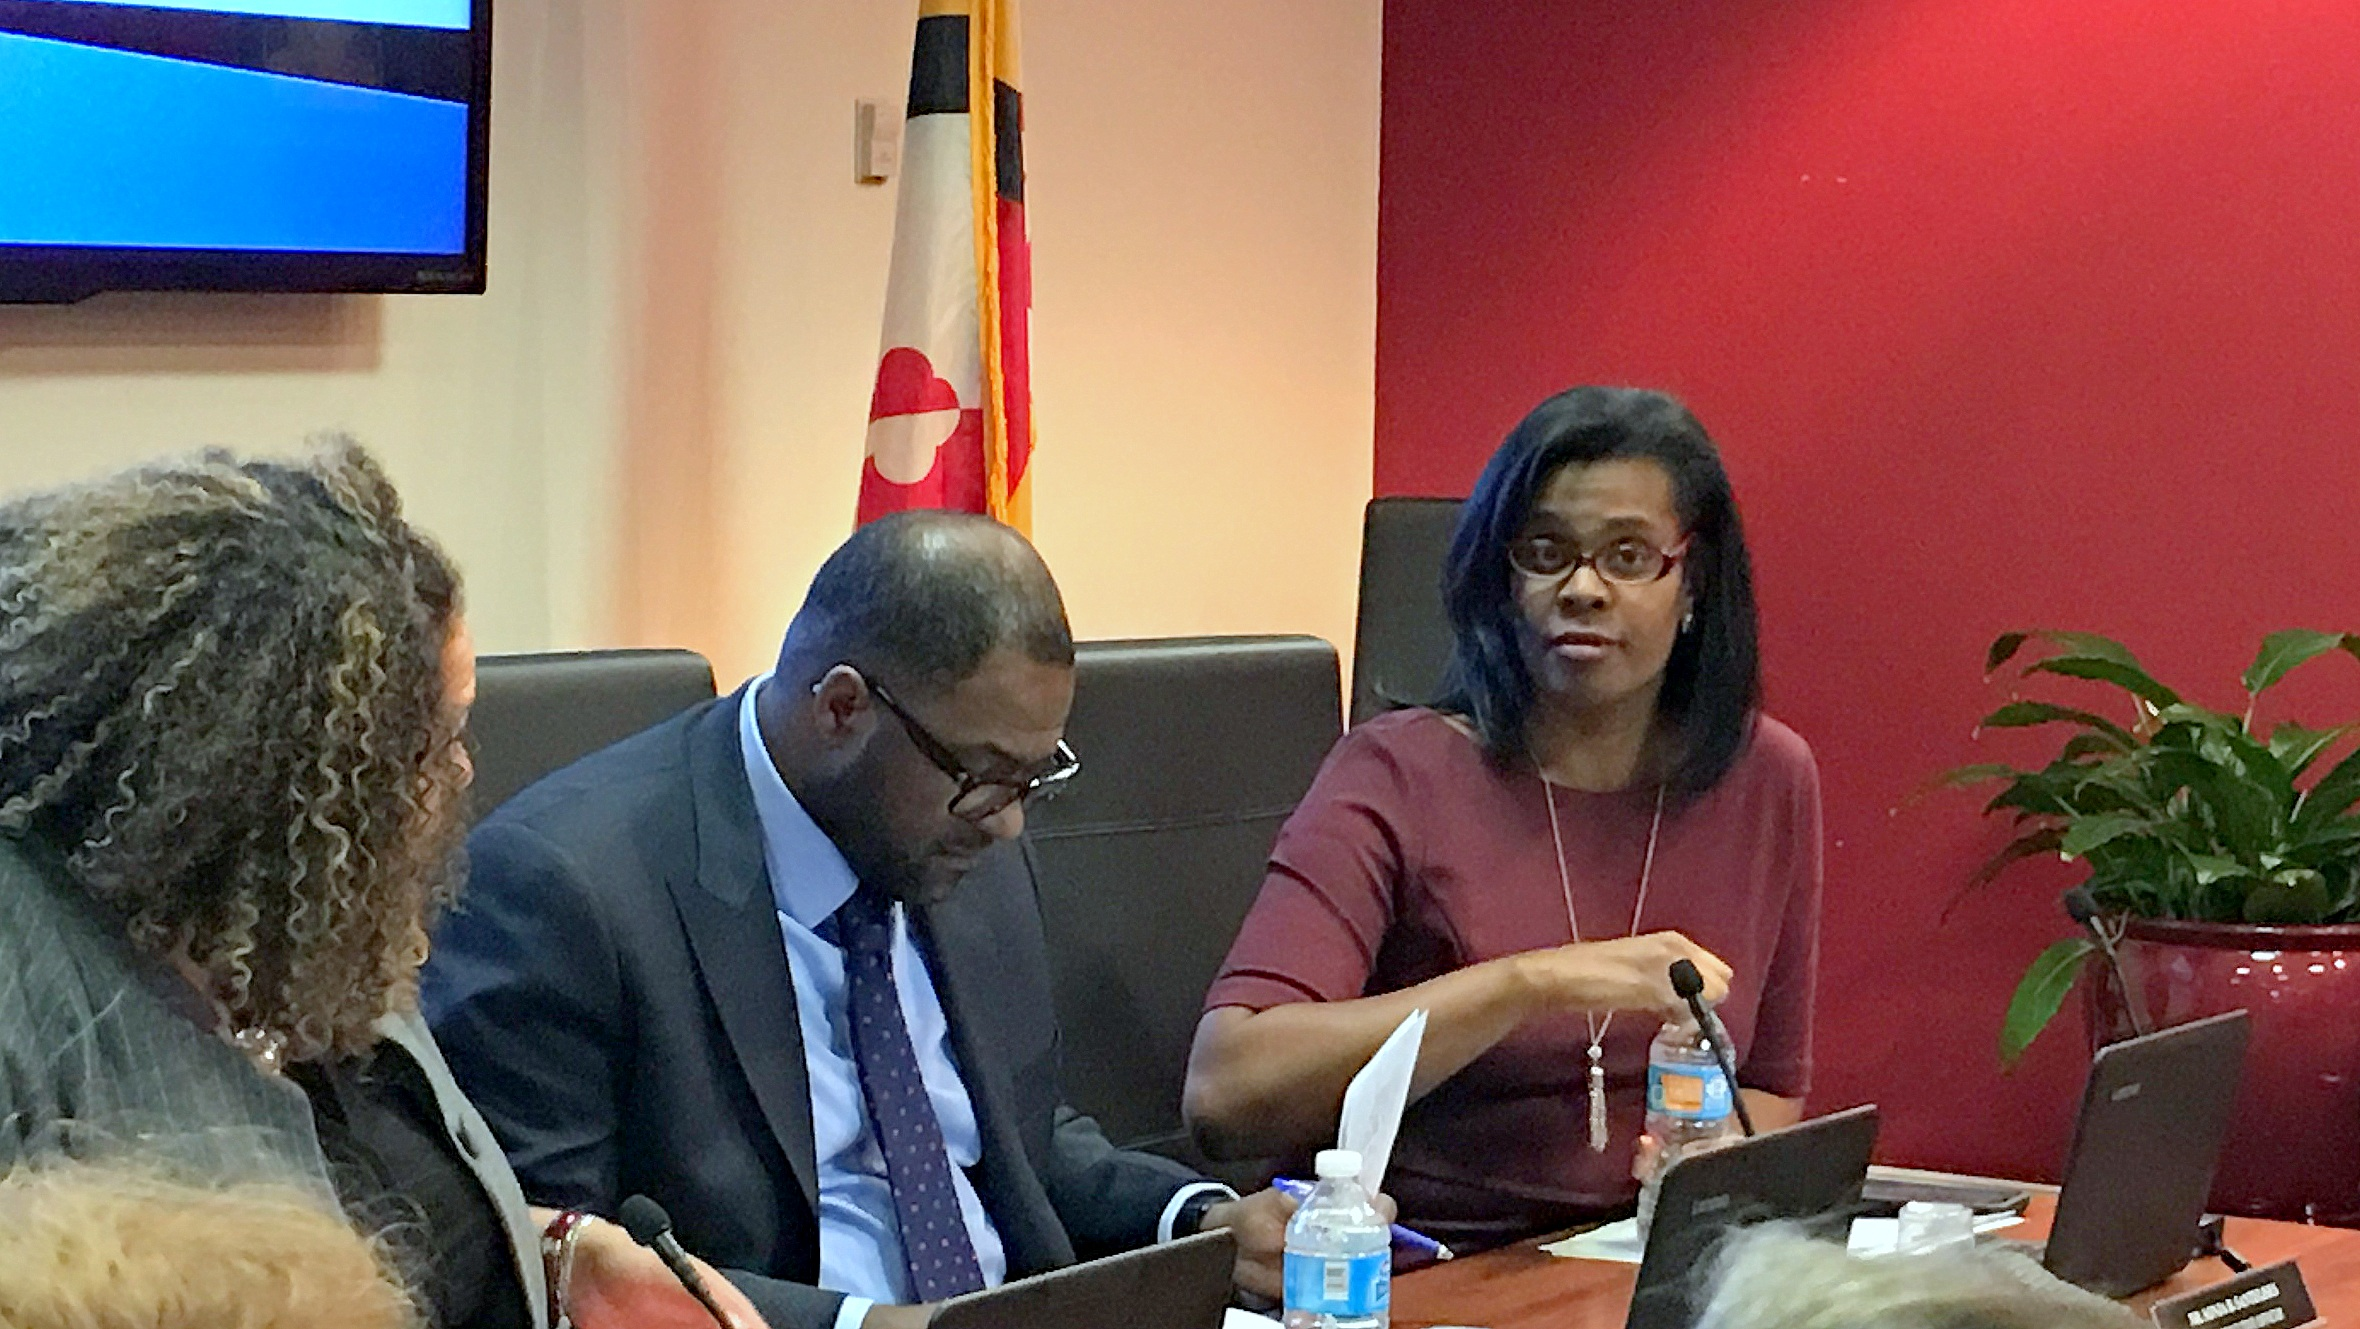 Baltimore City Schools CEO Sonja Santelises listens to testimony at a hearing on school closures. (Fern Shen)